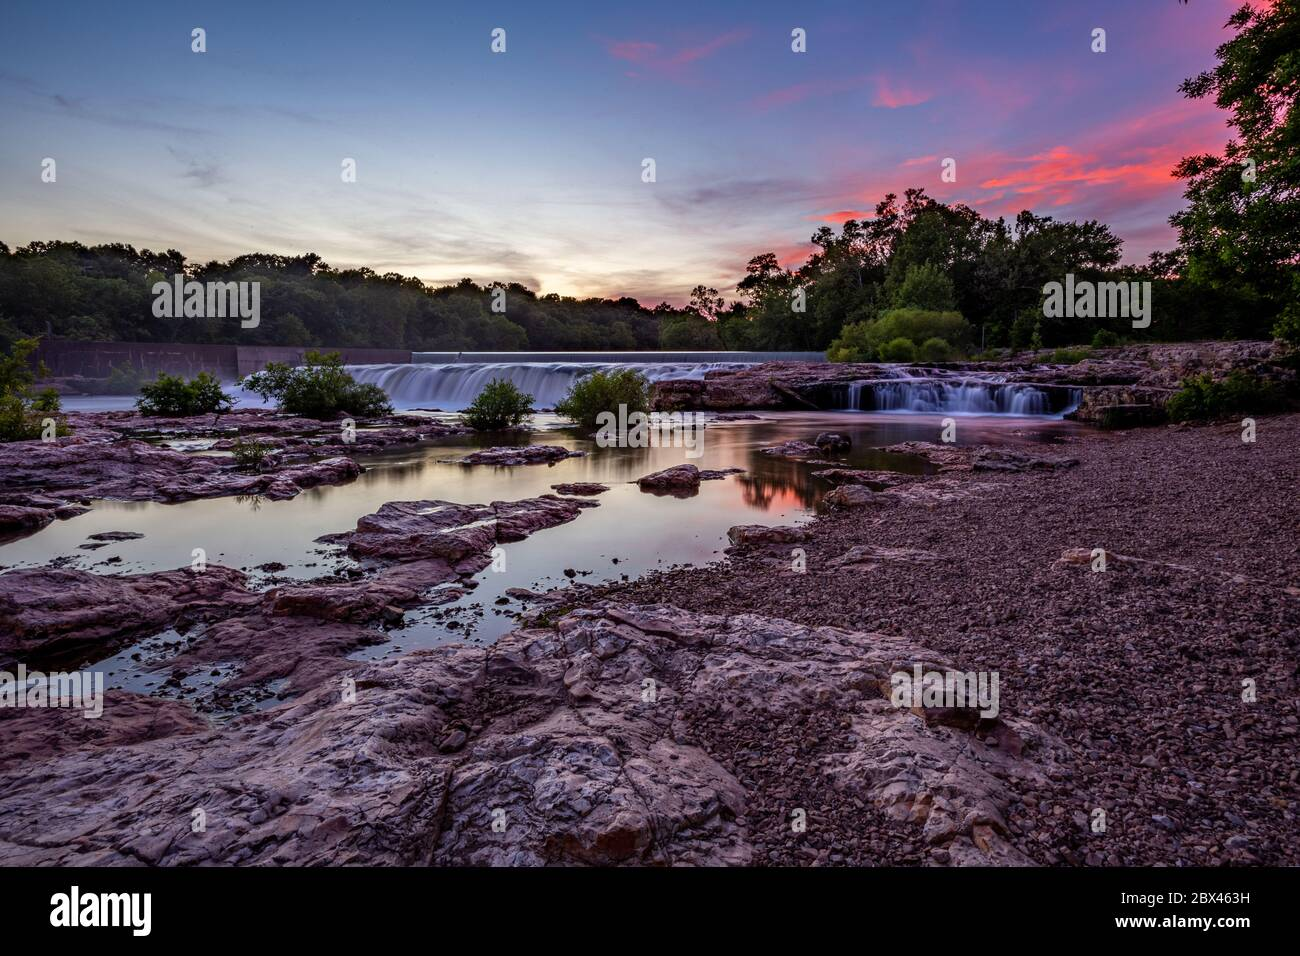 Sunset skies over Grand Falls waterfall in Joplin, Missouri Stock Photo